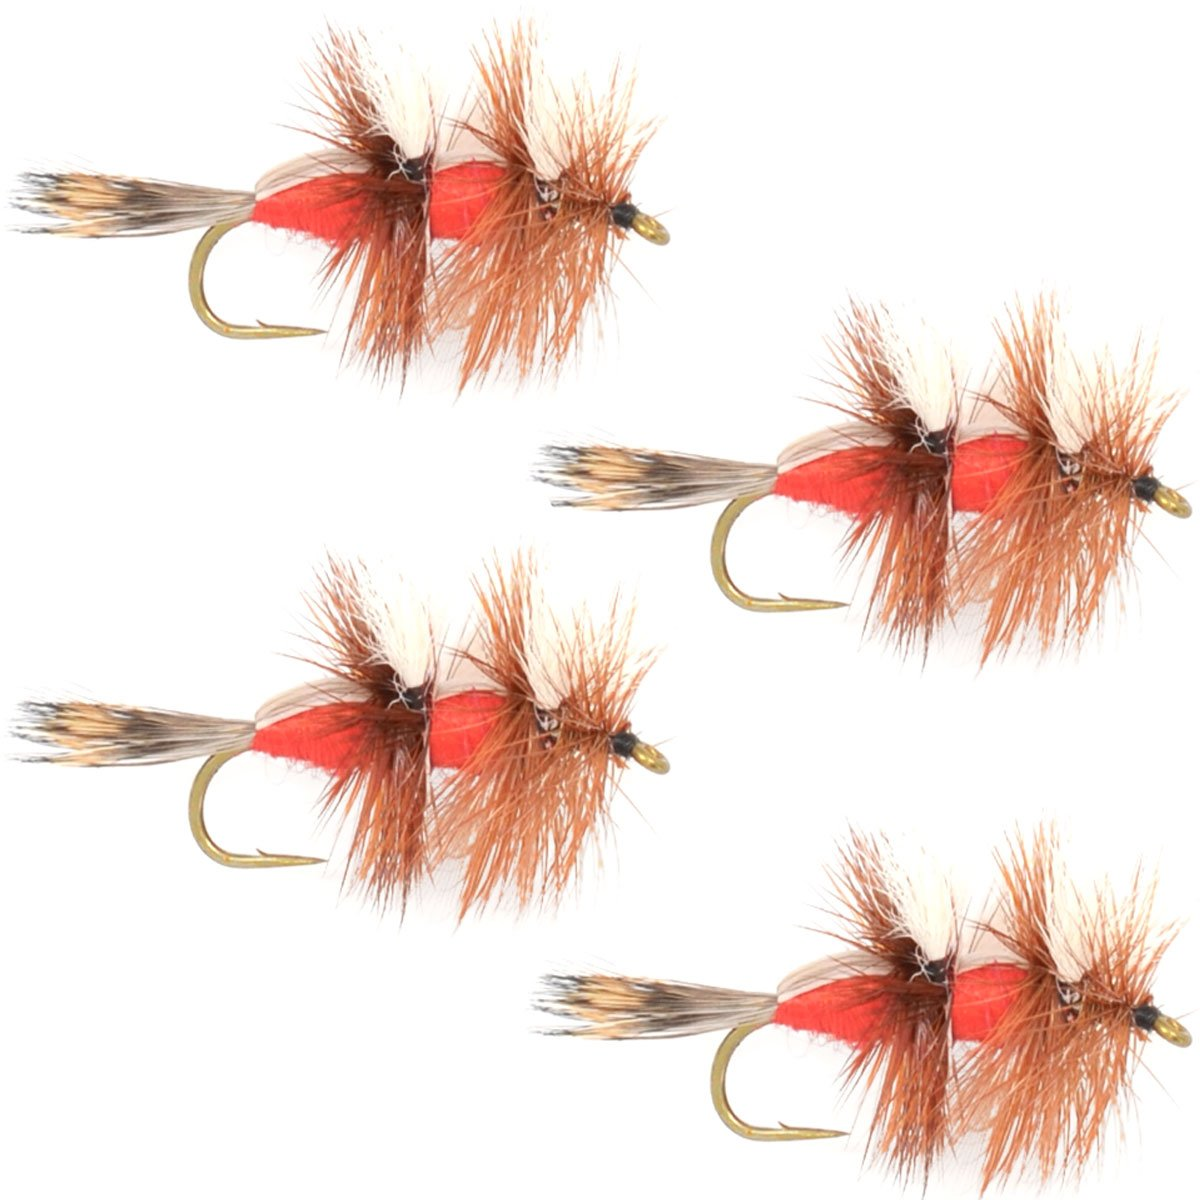 set of 10 Dry Flies fly fishing for trout